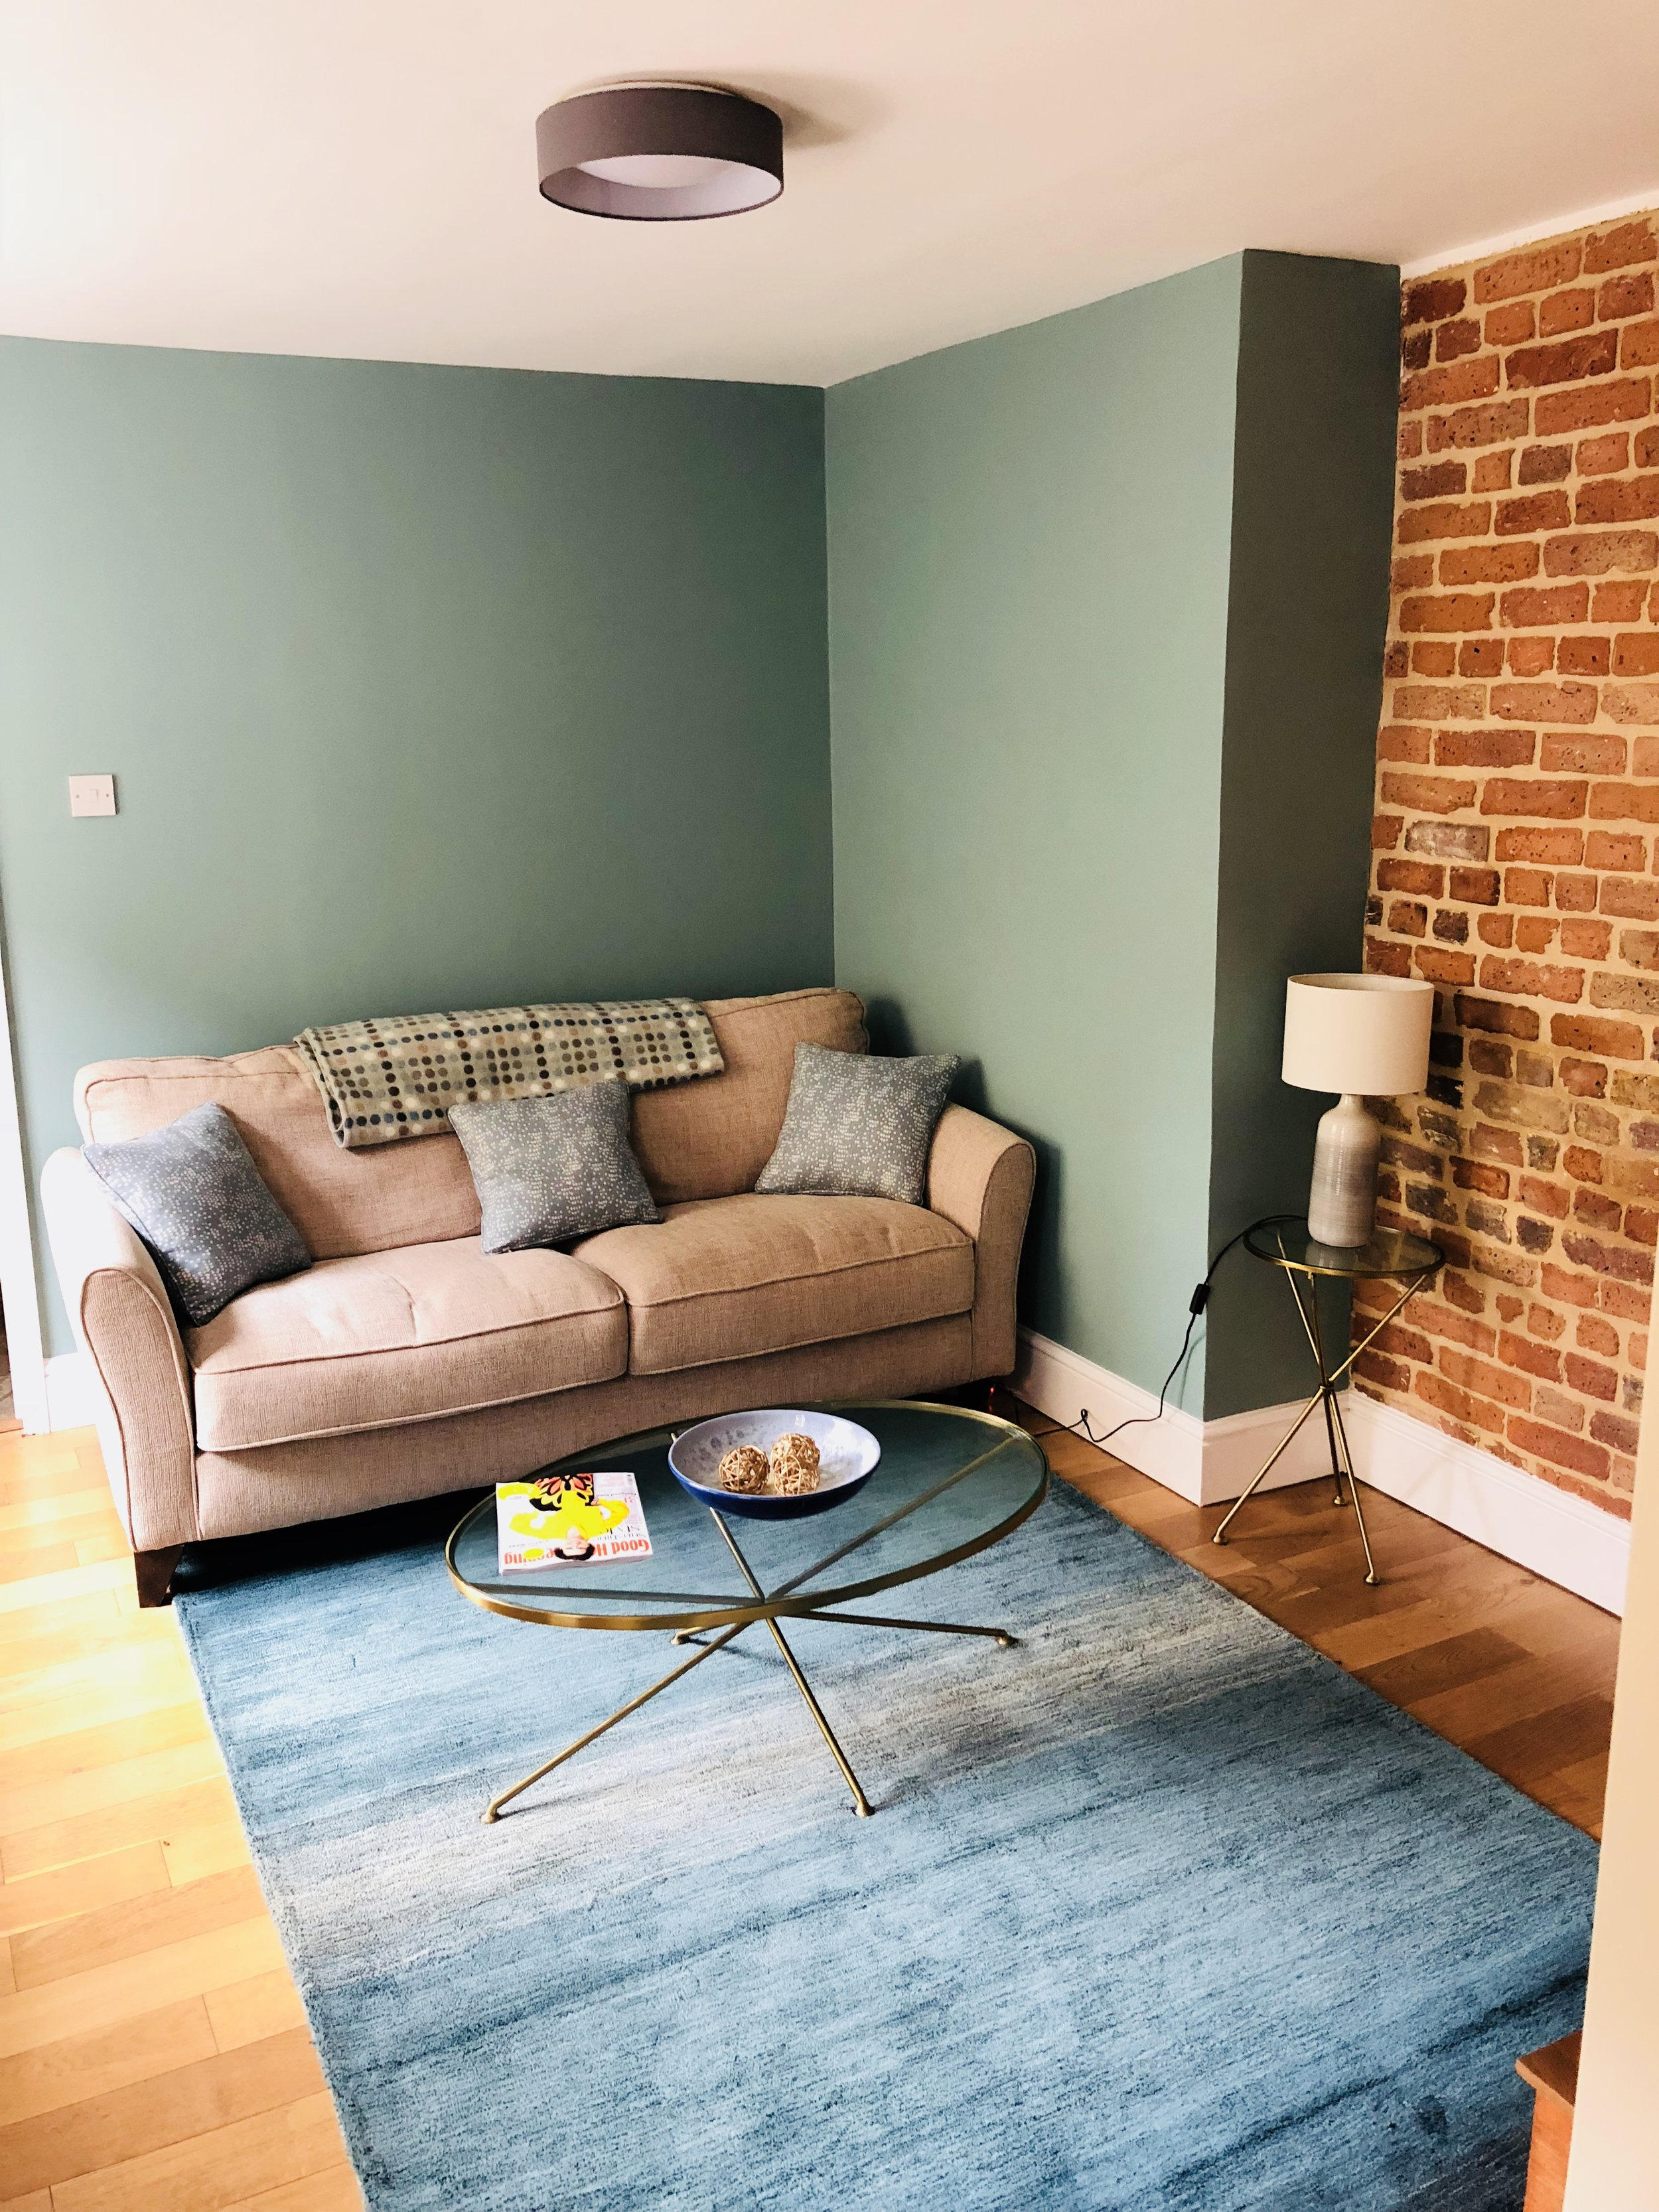 - The result is a beautiful warm and cosy snug. The original external Victorian wall was exposed by using a method called sand blasting, that removed all the paint and exposed the beauty of the brick underneath. The walls were painting in Oval room blue by Farrow and Ball with a gorgeous teal rug that compliments the brass furniture.